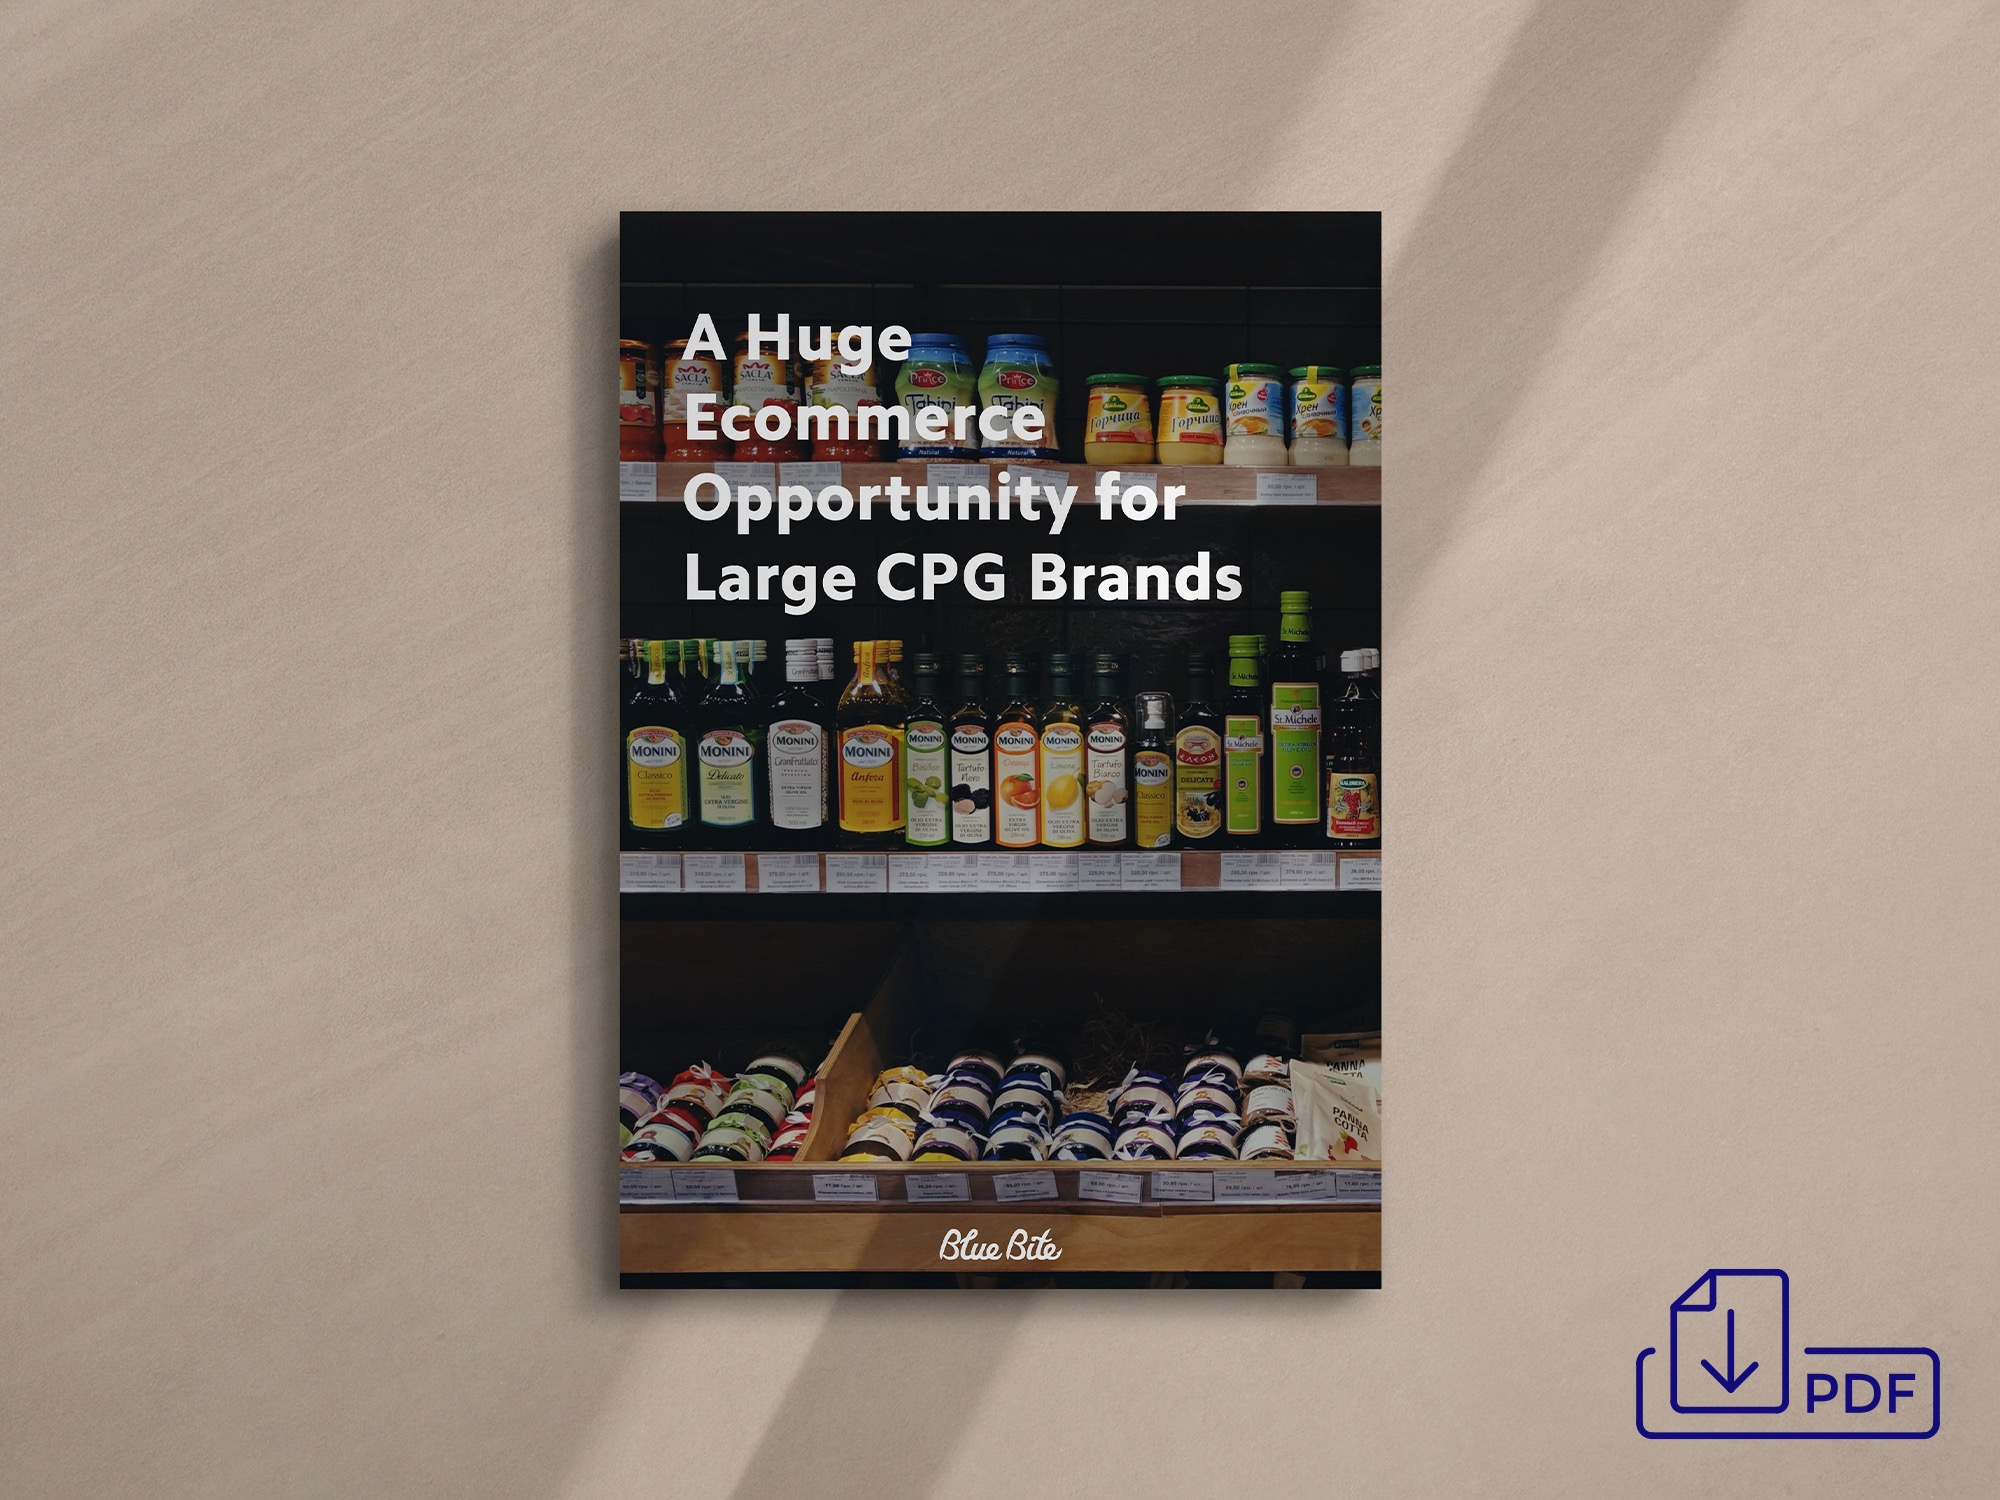 Get the Ecommerce Opportunity for Large CPG Brands PDF